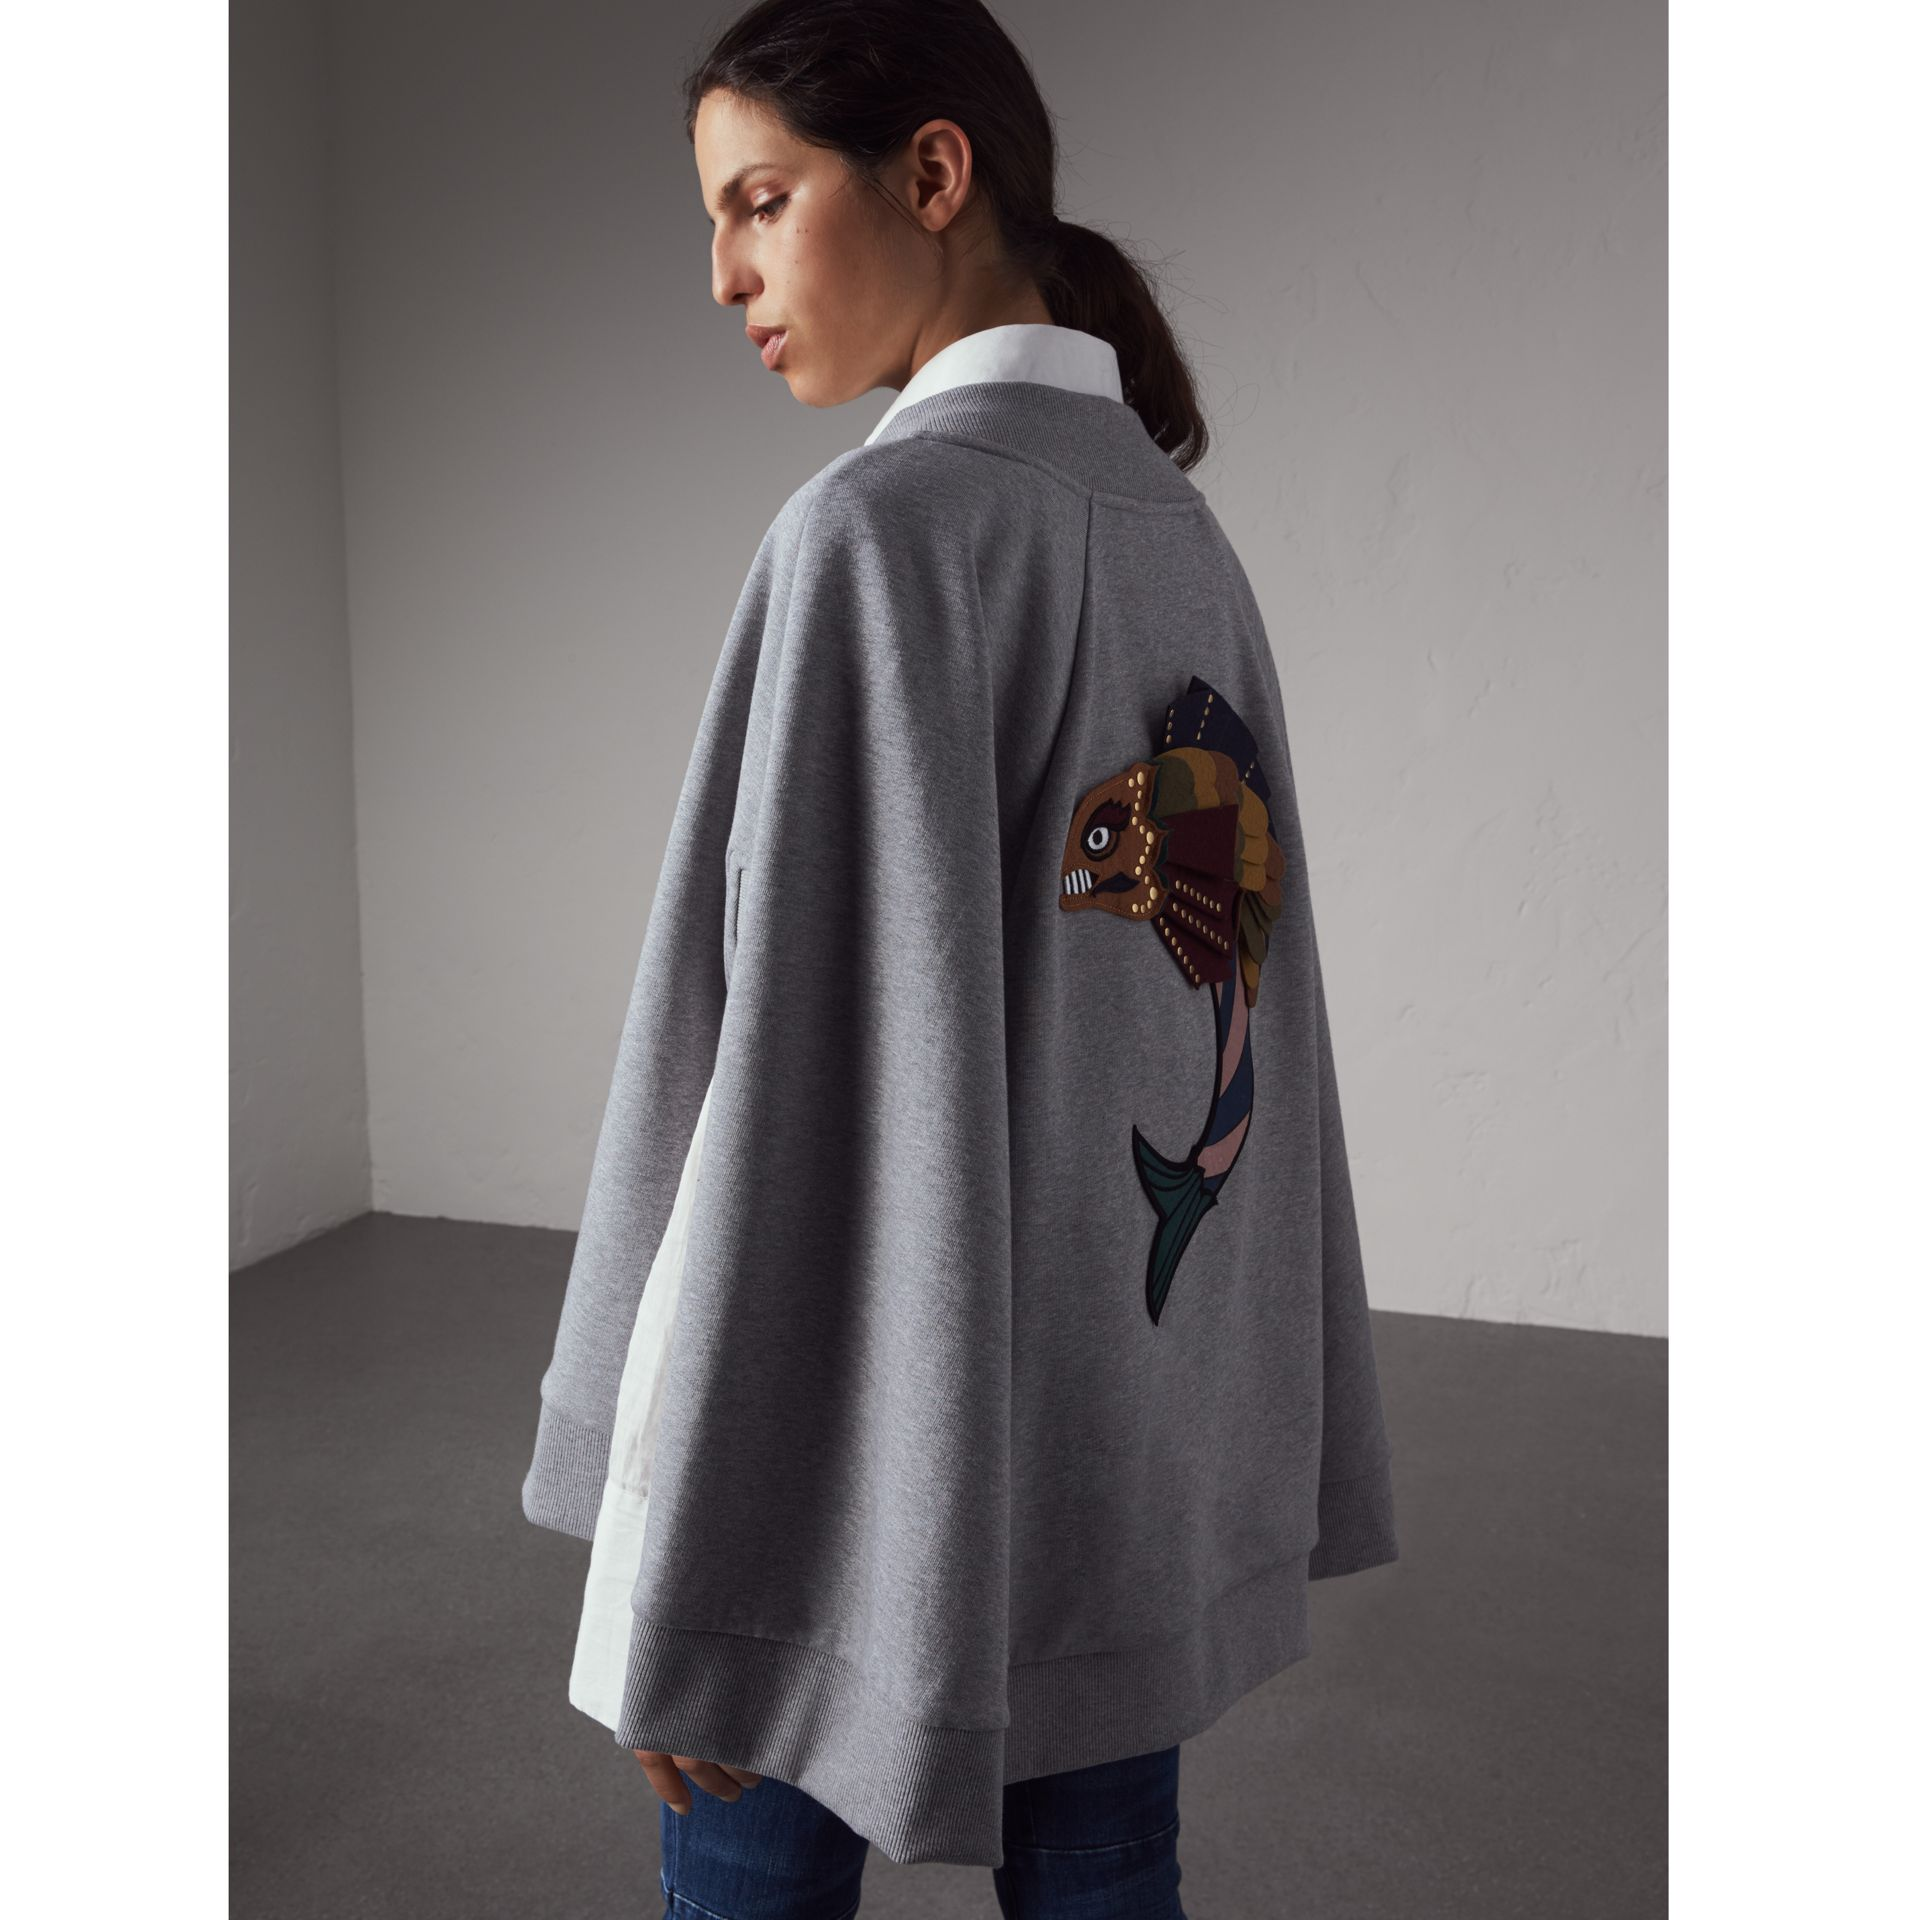 Beasts Appliqué Sweatshirt Cape in Pale Grey Melange - Women | Burberry - gallery image 1